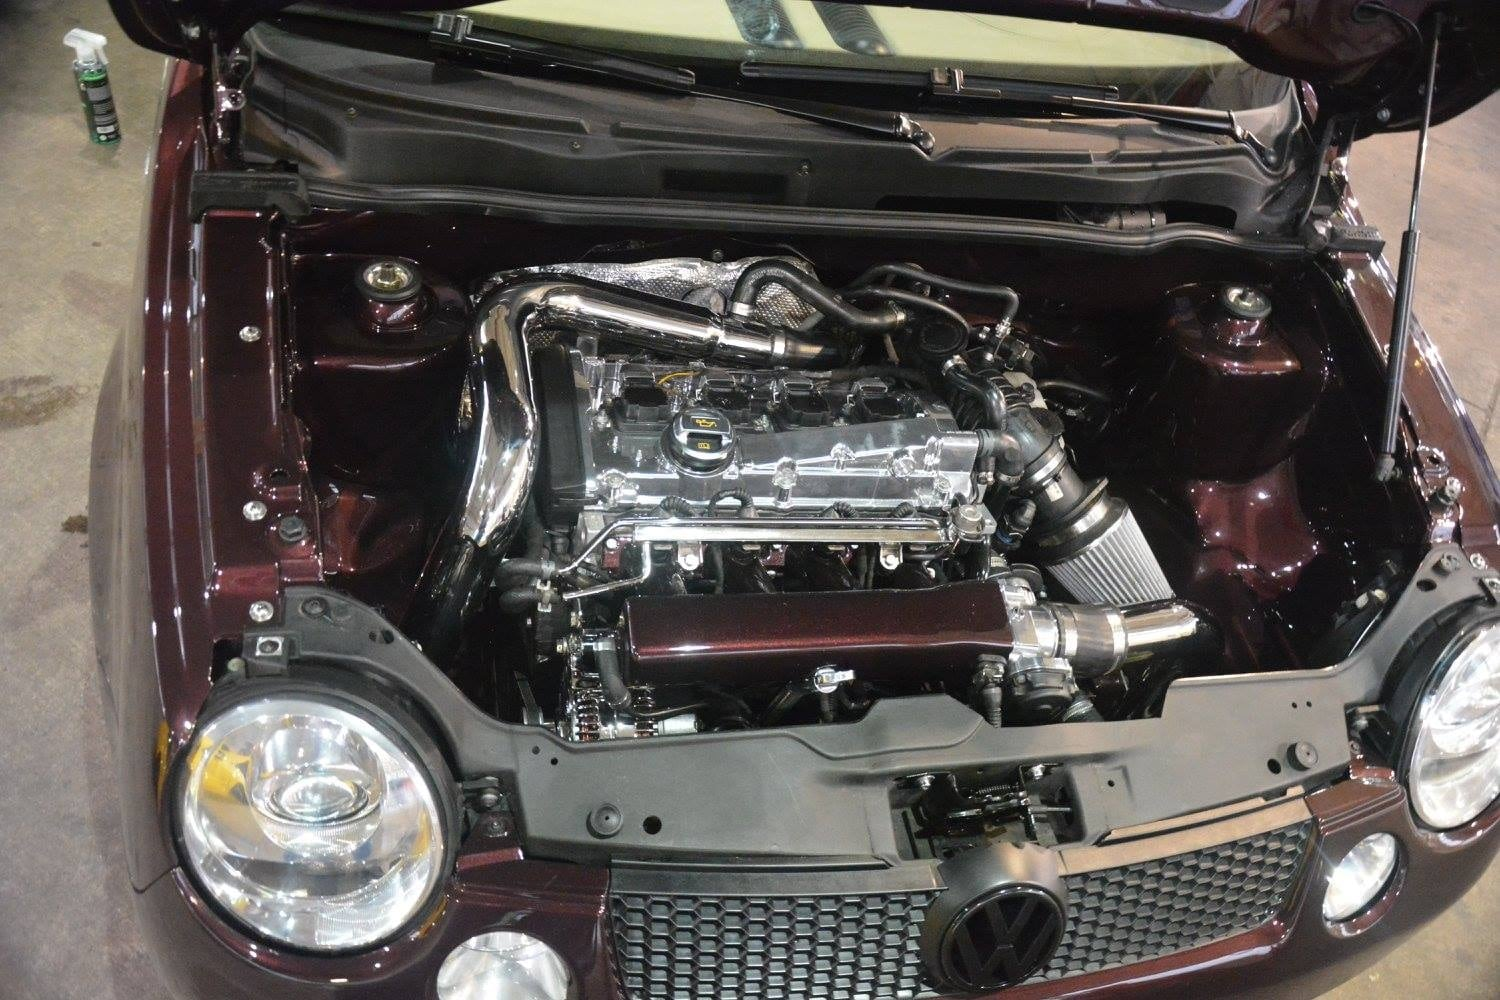 East Coast Vw >> Engine Converted Lupos - Page 4 - Tuning - Club Lupo